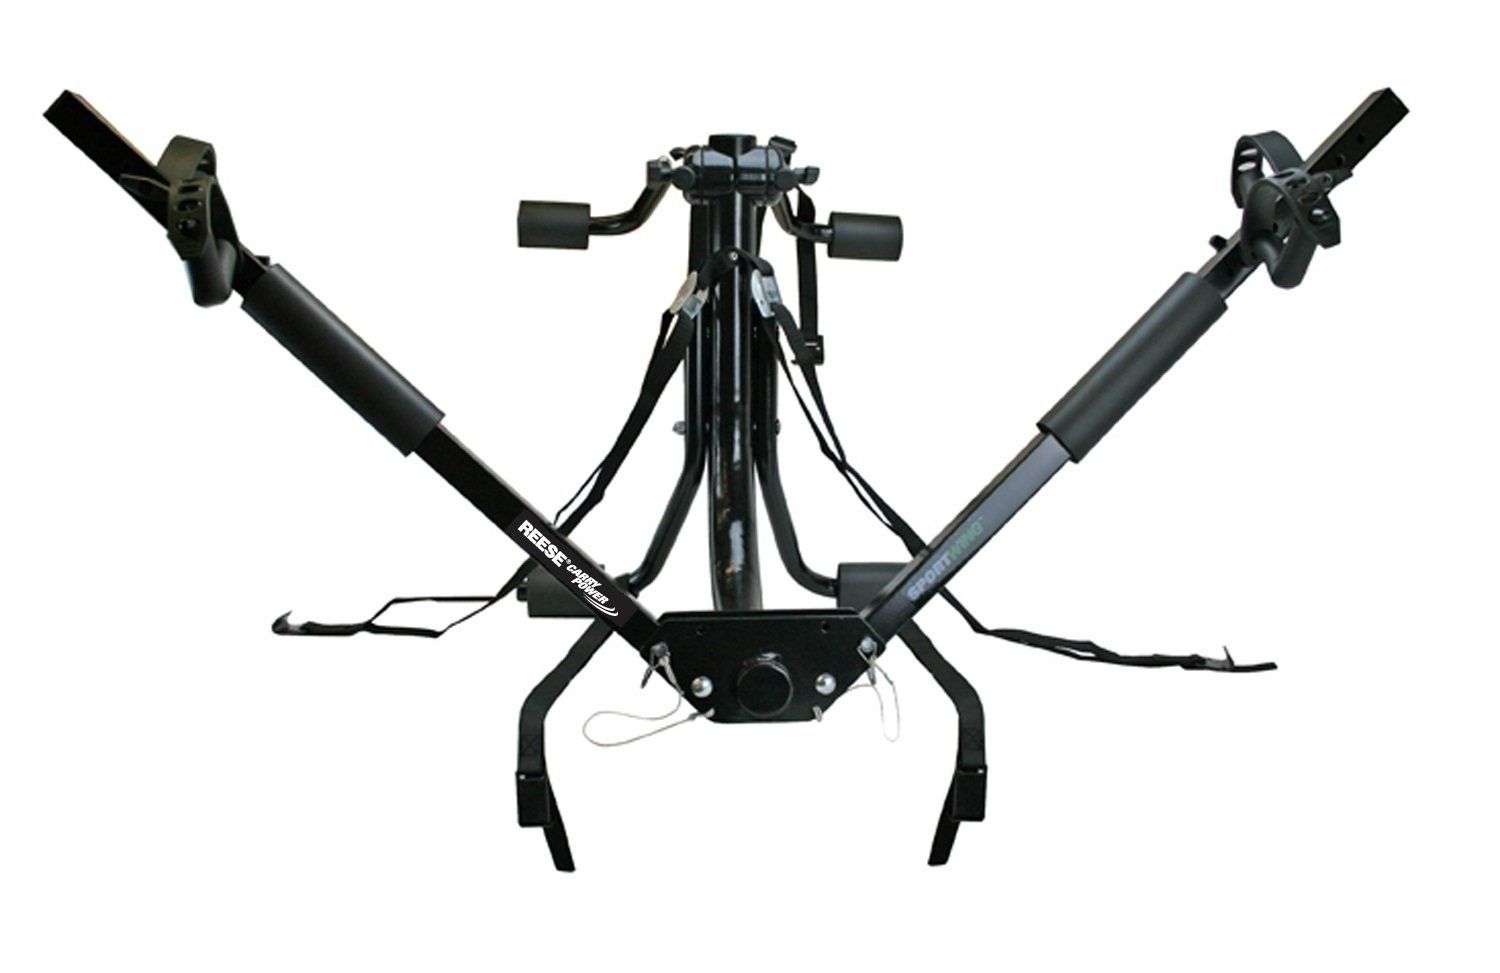 Reese Carry Power 1390400 Sportwing Trunk Mount Bike Rack Holds Two Bikes Any Shape And Style Adjustable To Fit B Trunk Mount Bike Rack Bike Rack Car Racks